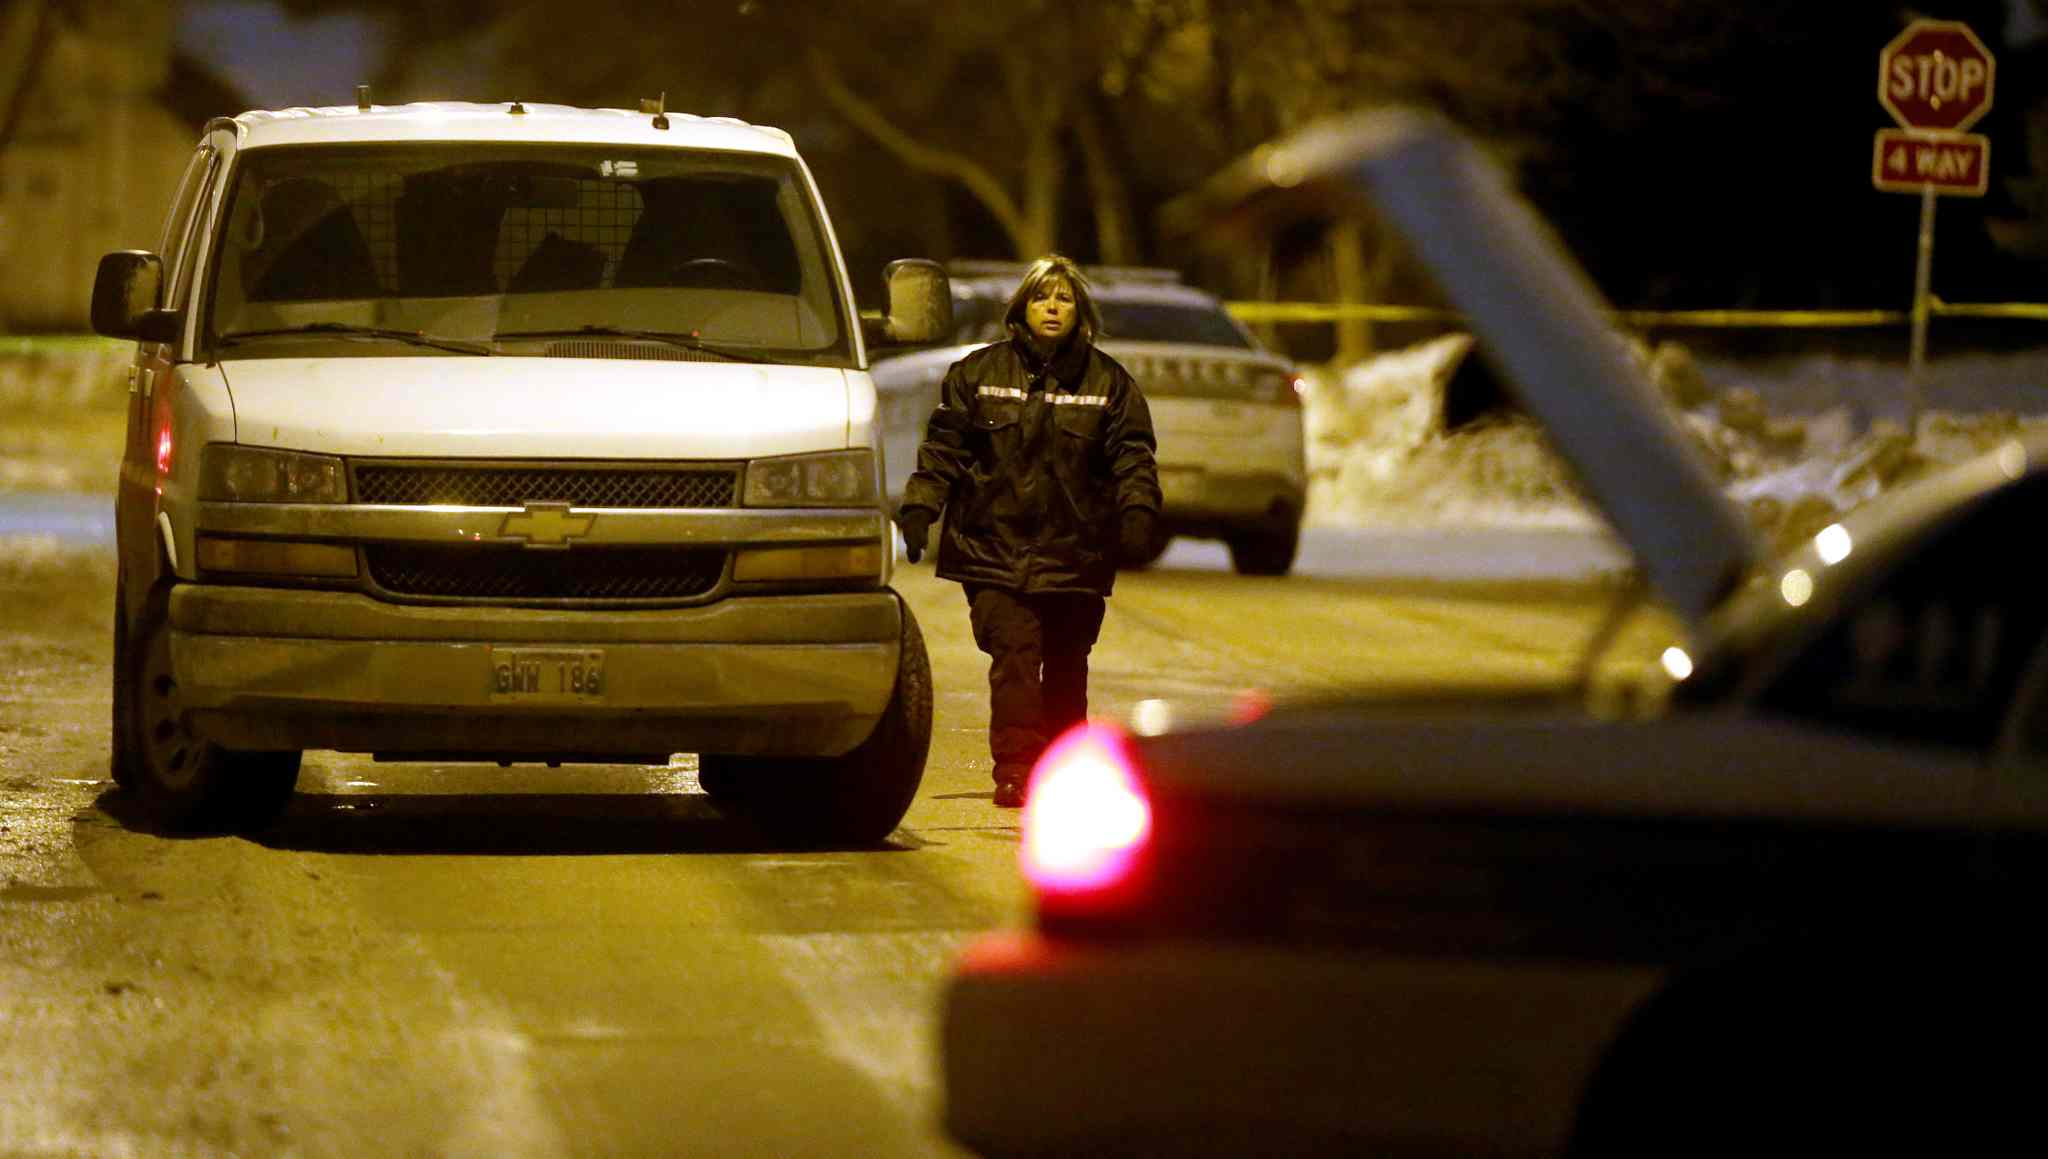 Winnipeg Police and Forensic Investigators at a large crime scene on Bayne Crescent in the early morning hours of Sunday, February 21, 2016.